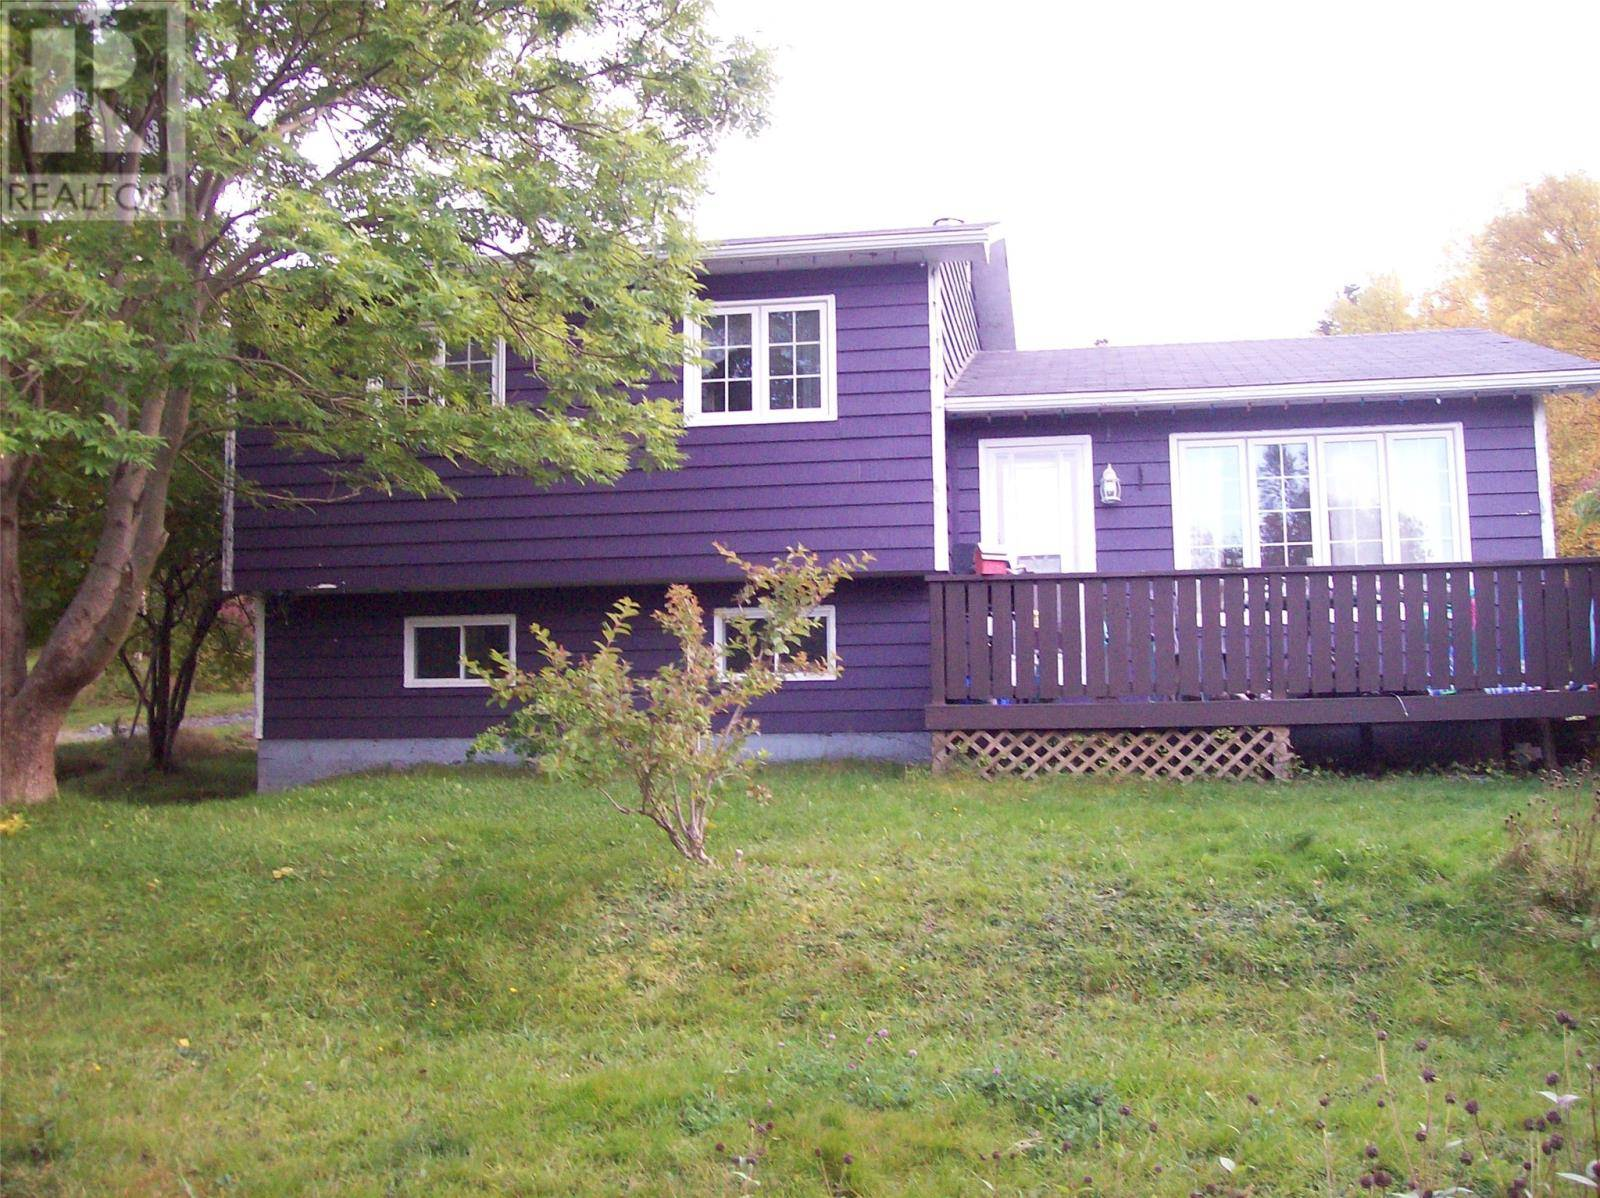 House for sale at 351 Swansea Rd Victoria Newfoundland - MLS: 1205419